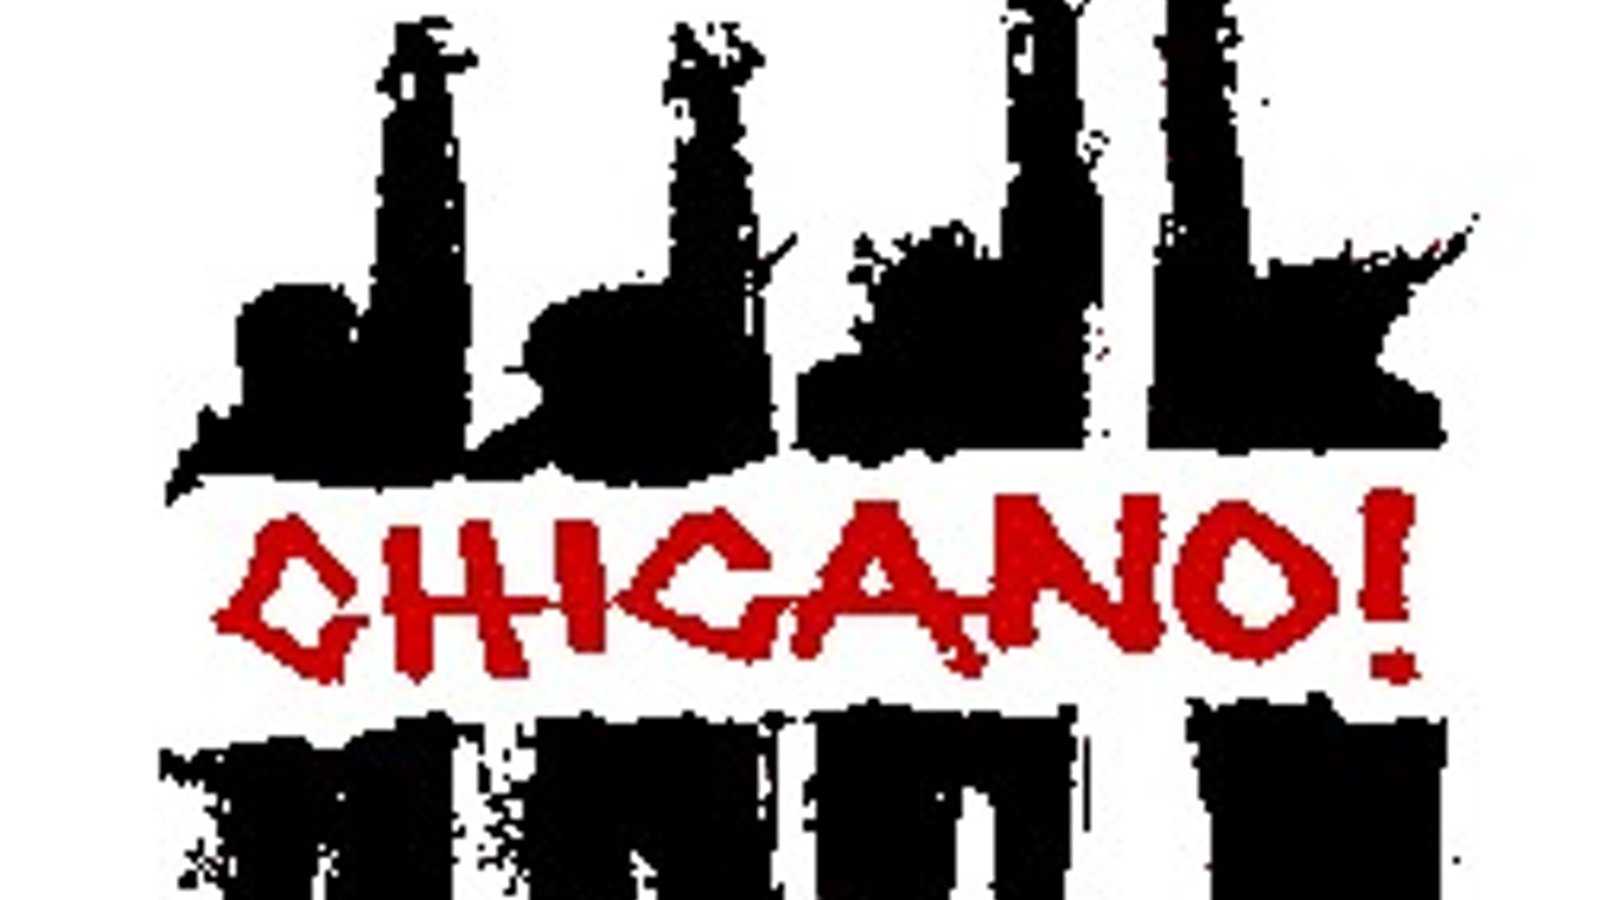 Chicano! History of the Mexican-American Civil Rights Movement